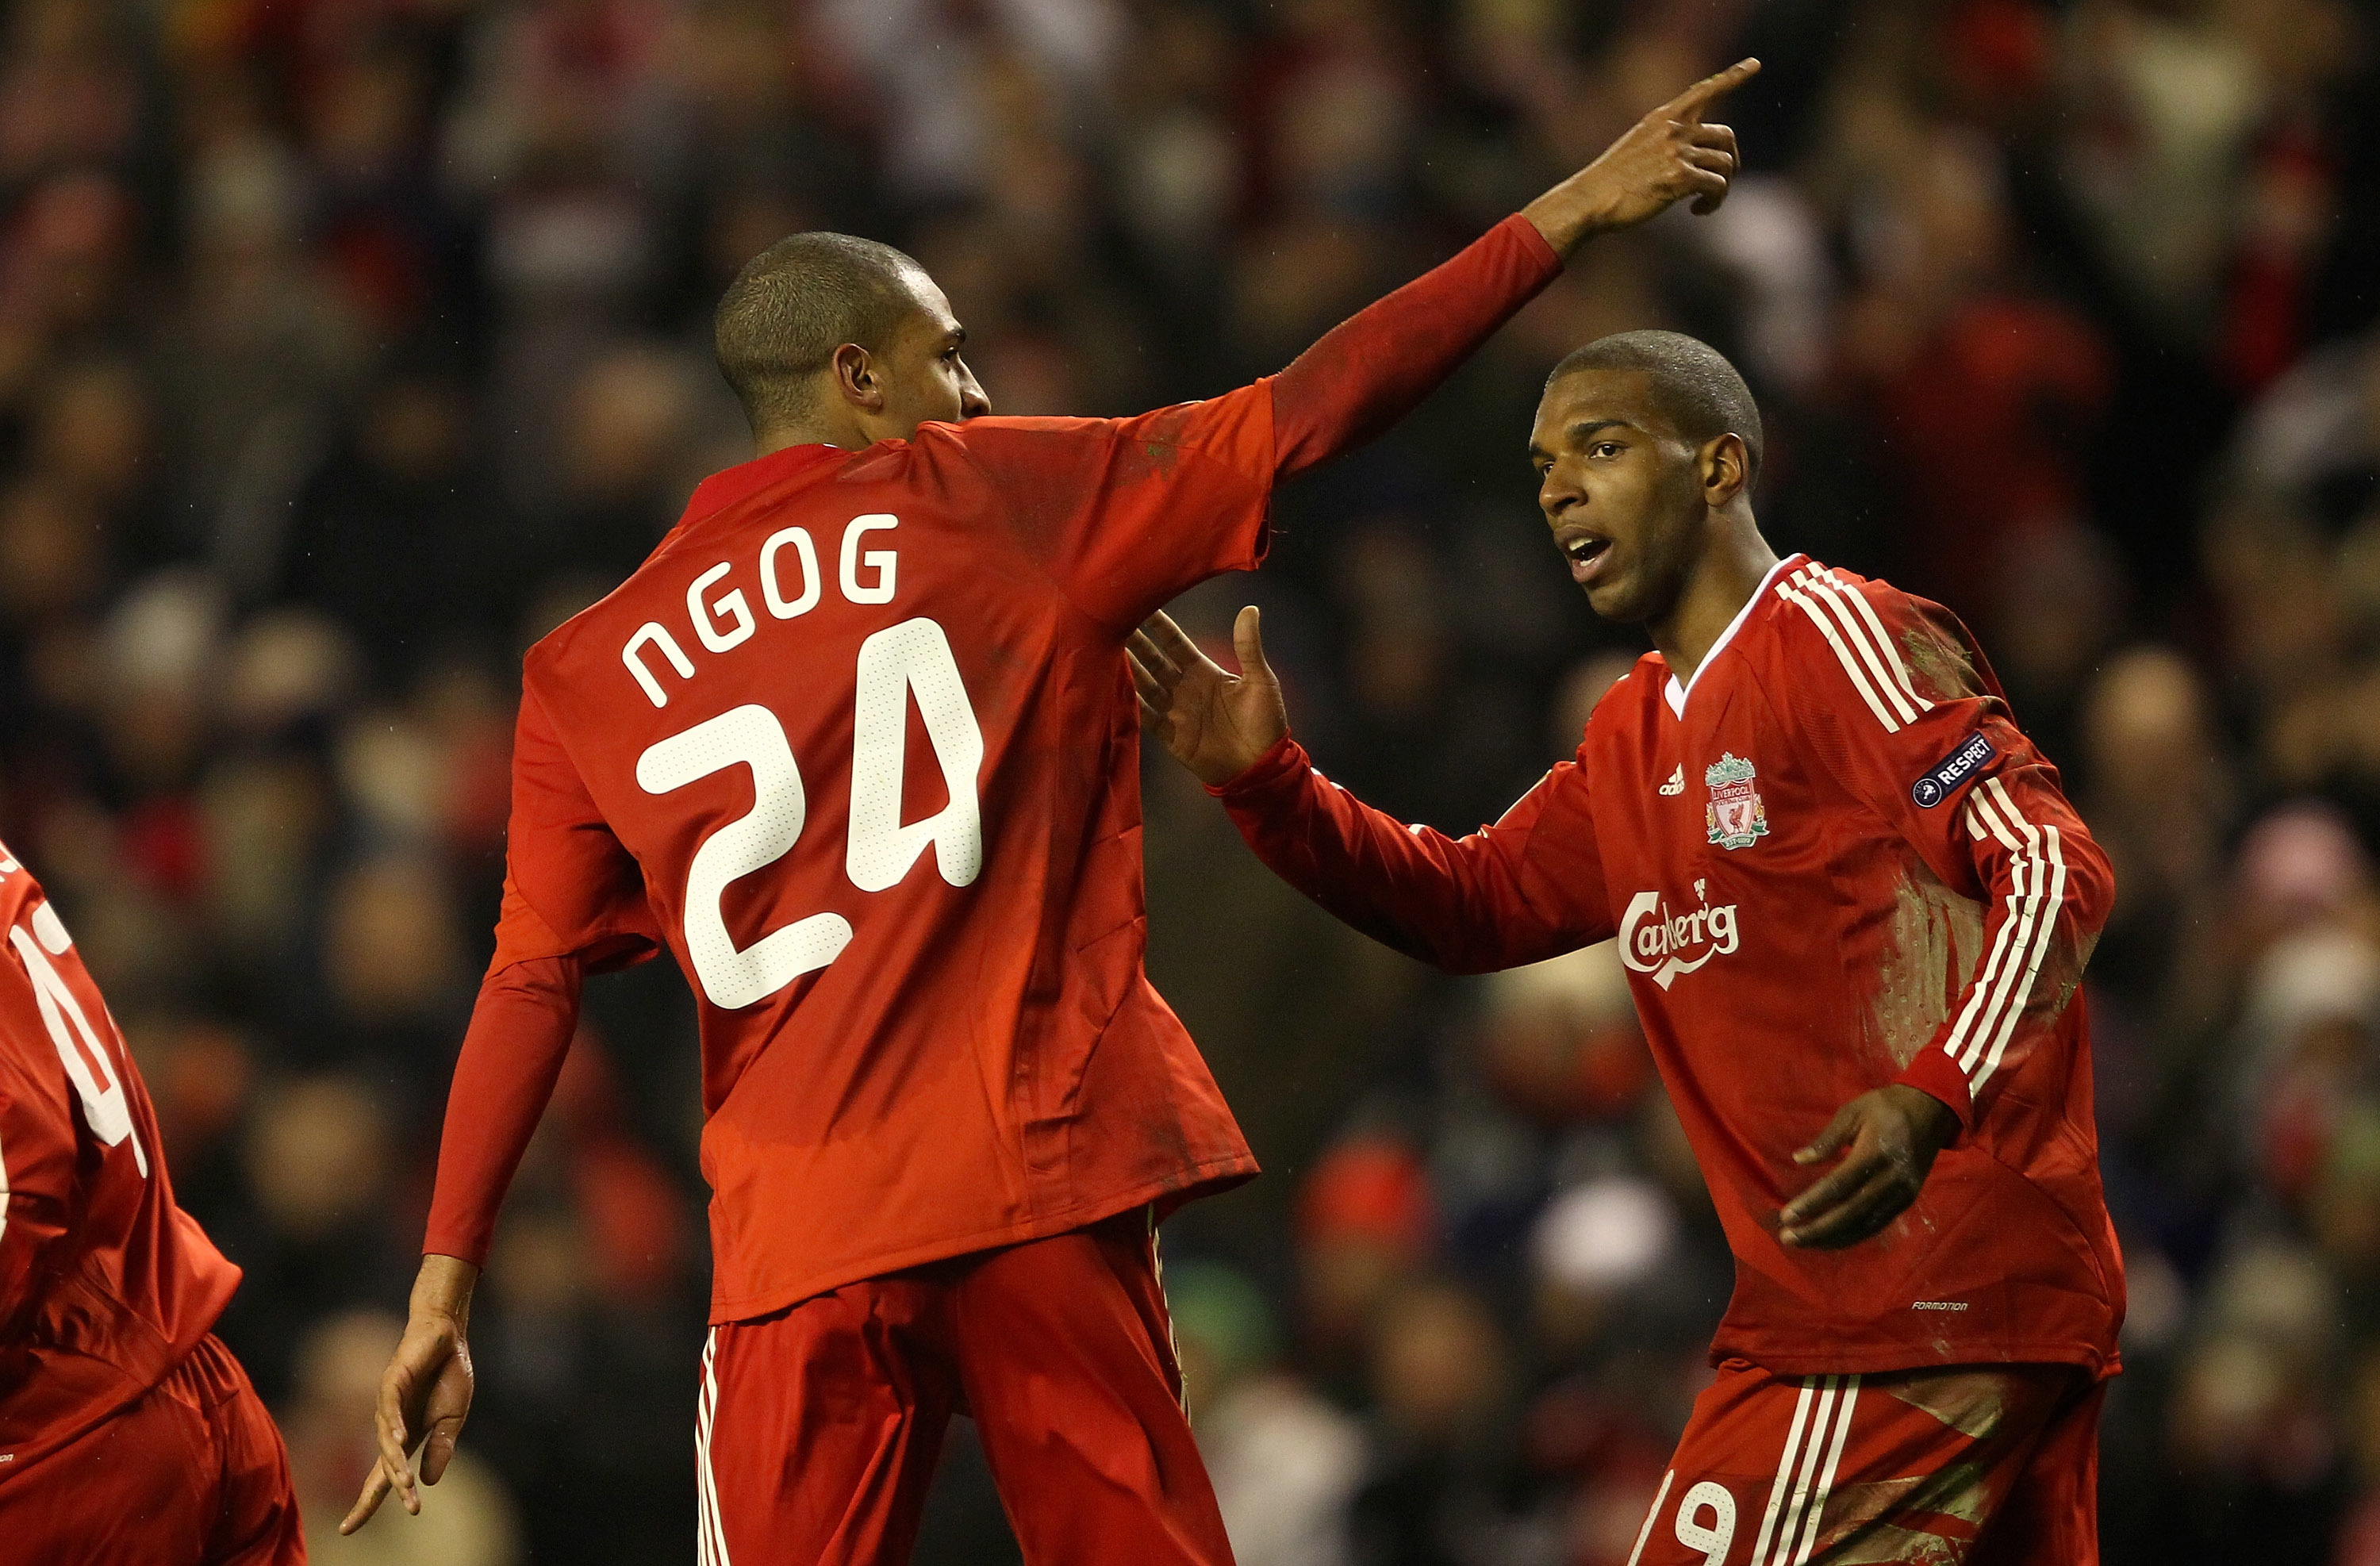 David Ngog celebrates after scoring for Liverpool in 2010. Photo by Clive Brunskill/Getty Images